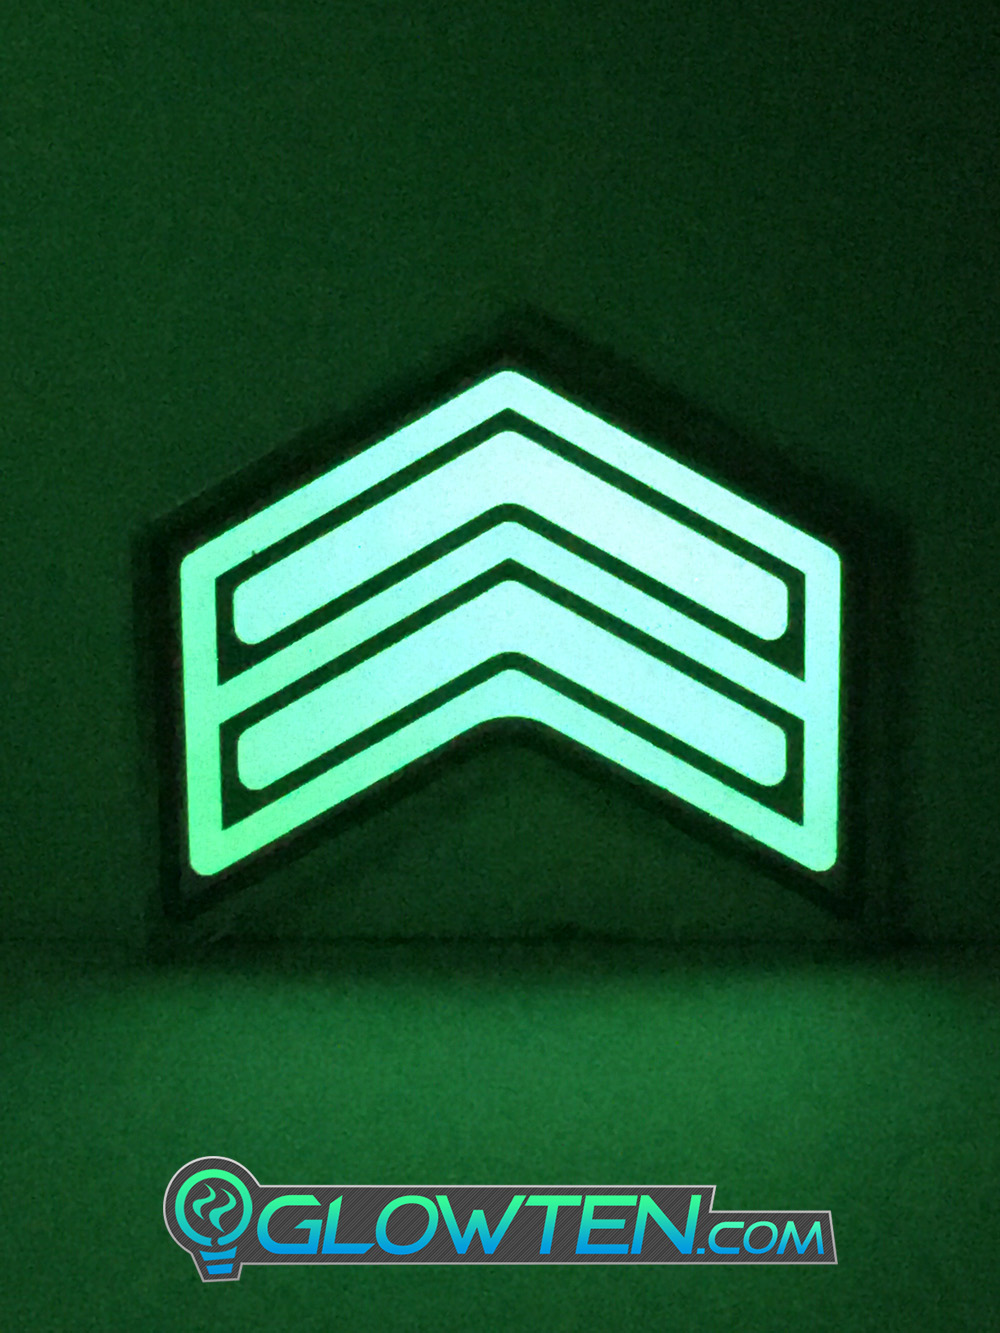 GLOWTEN.com - DOUBLE ARROWS Glow in the Dark Stairs Guide Directional Safety See Clearly At Night Metal Badge Sign walkways,stairs,exits picture photo cap preview pic 2